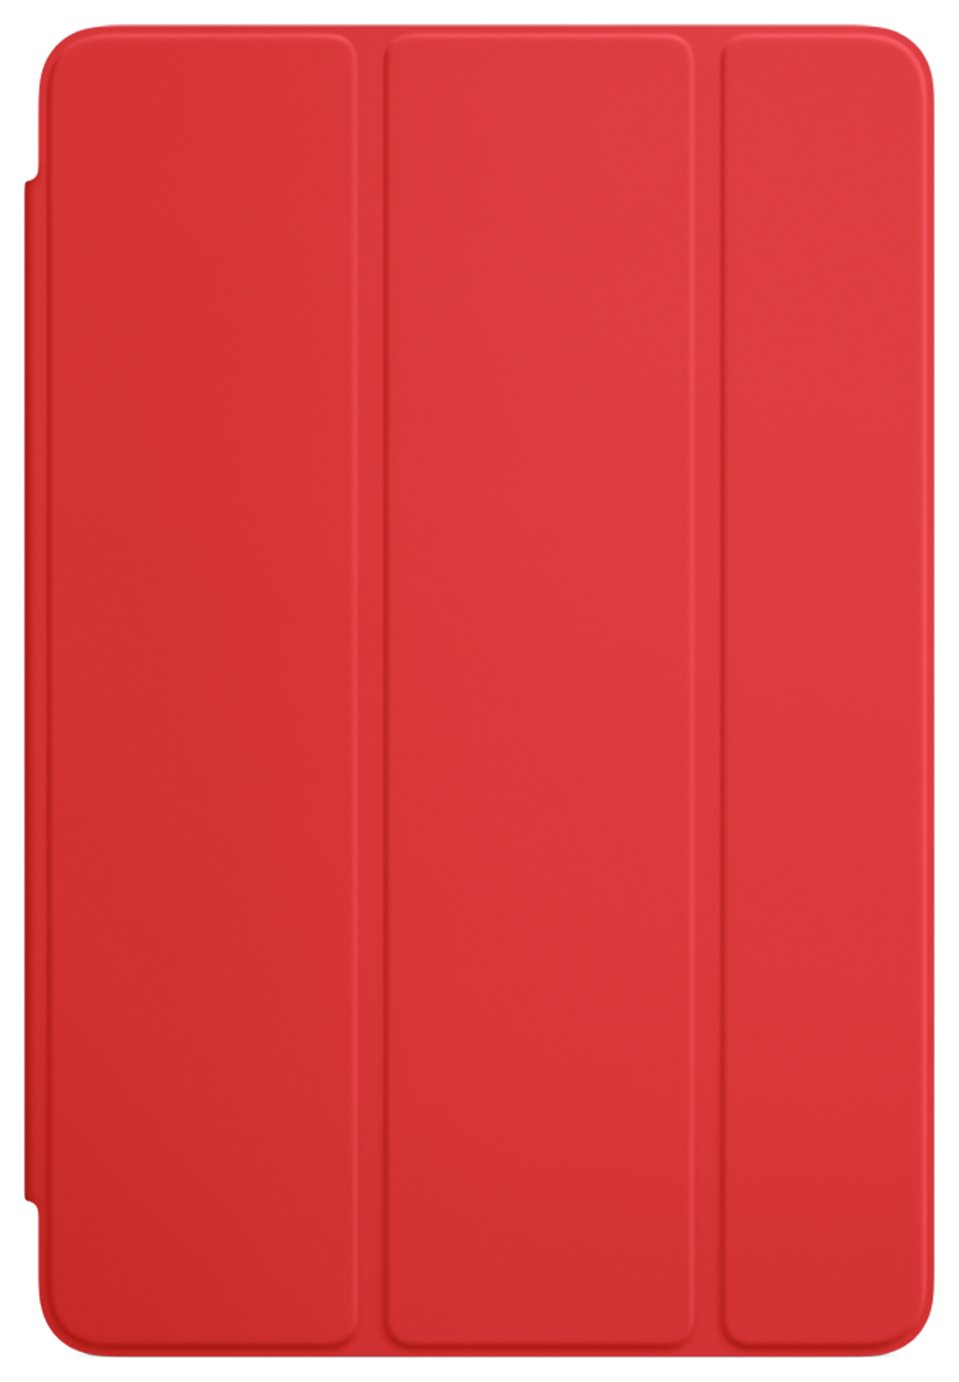 Apple iPad Mini 4 Smart Cover - Red cheapest retail price